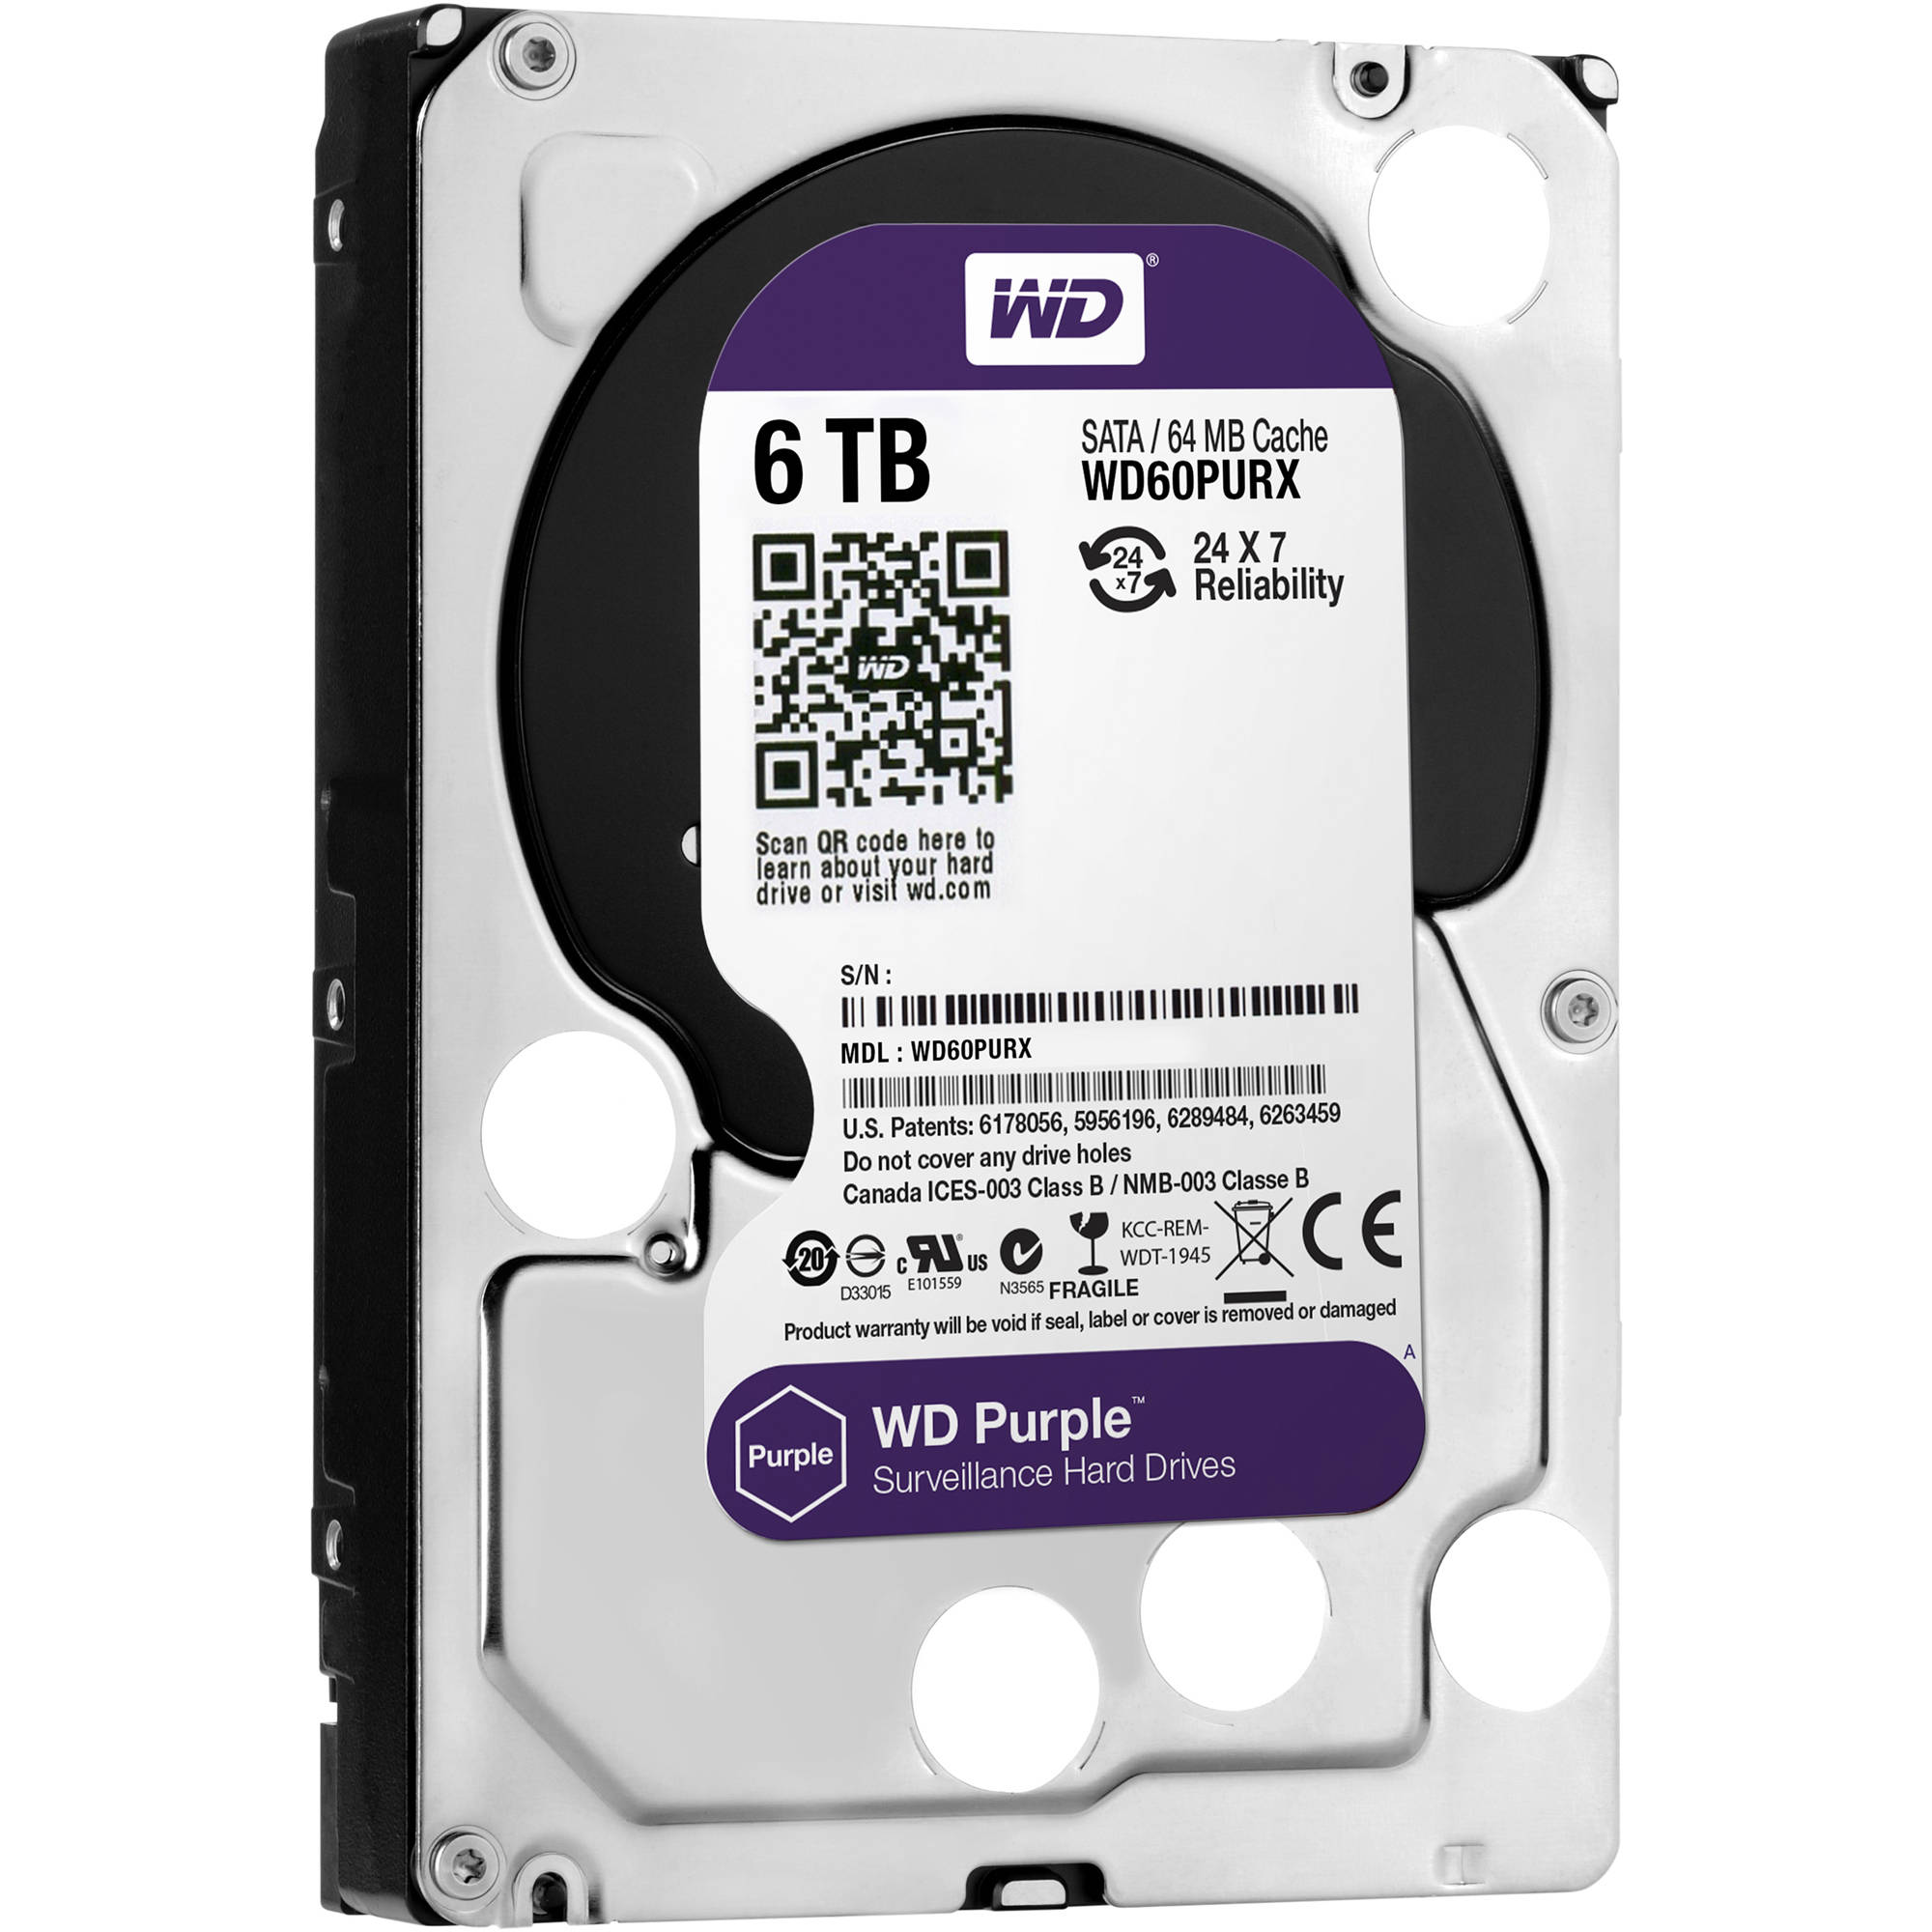 6TB WD Purple Surveillance Hard Disk Drive - 5400 RPM Class SATA 6 Gb/s 64MB Cache 3.5 Inch